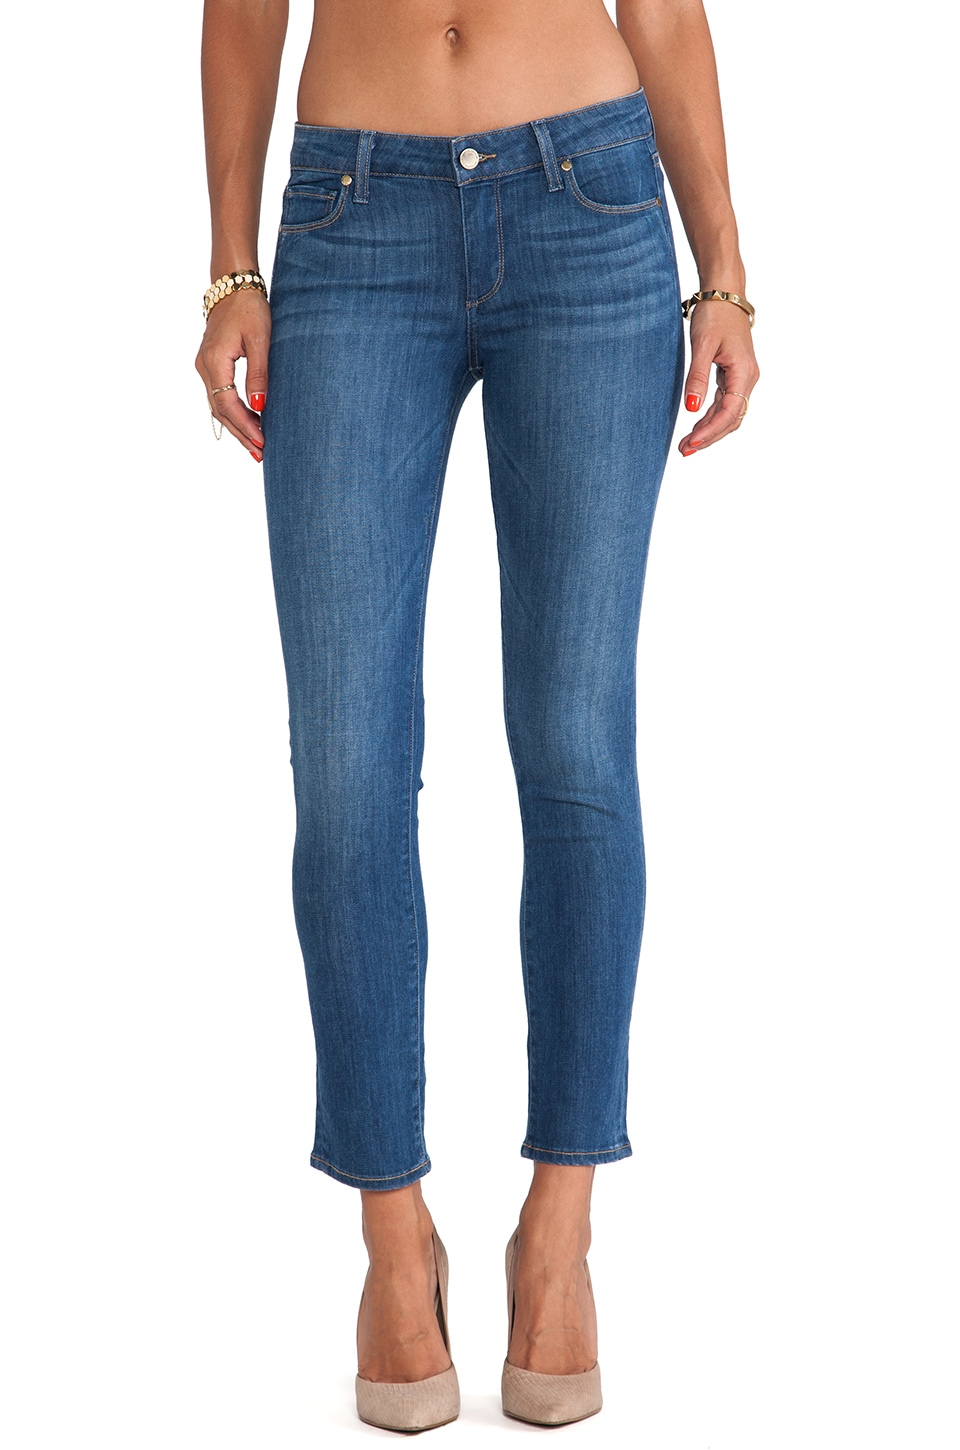 Paige Denim Skyline Ankle Peg in Festival